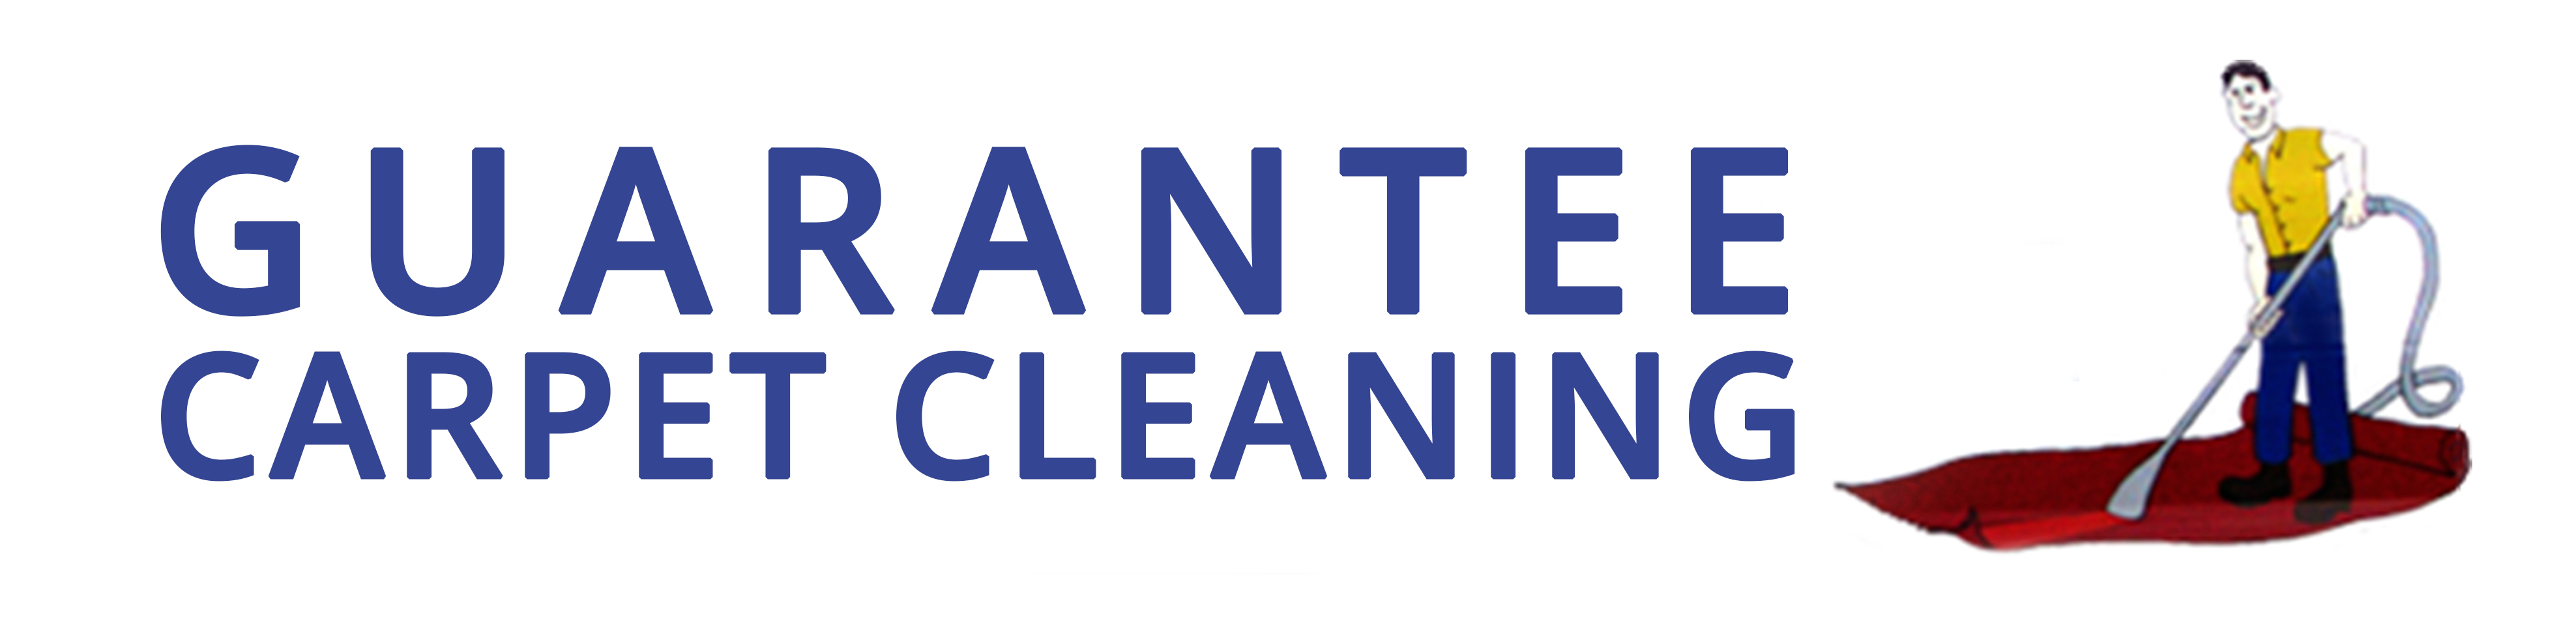 Guarantee Carpet Cleaning